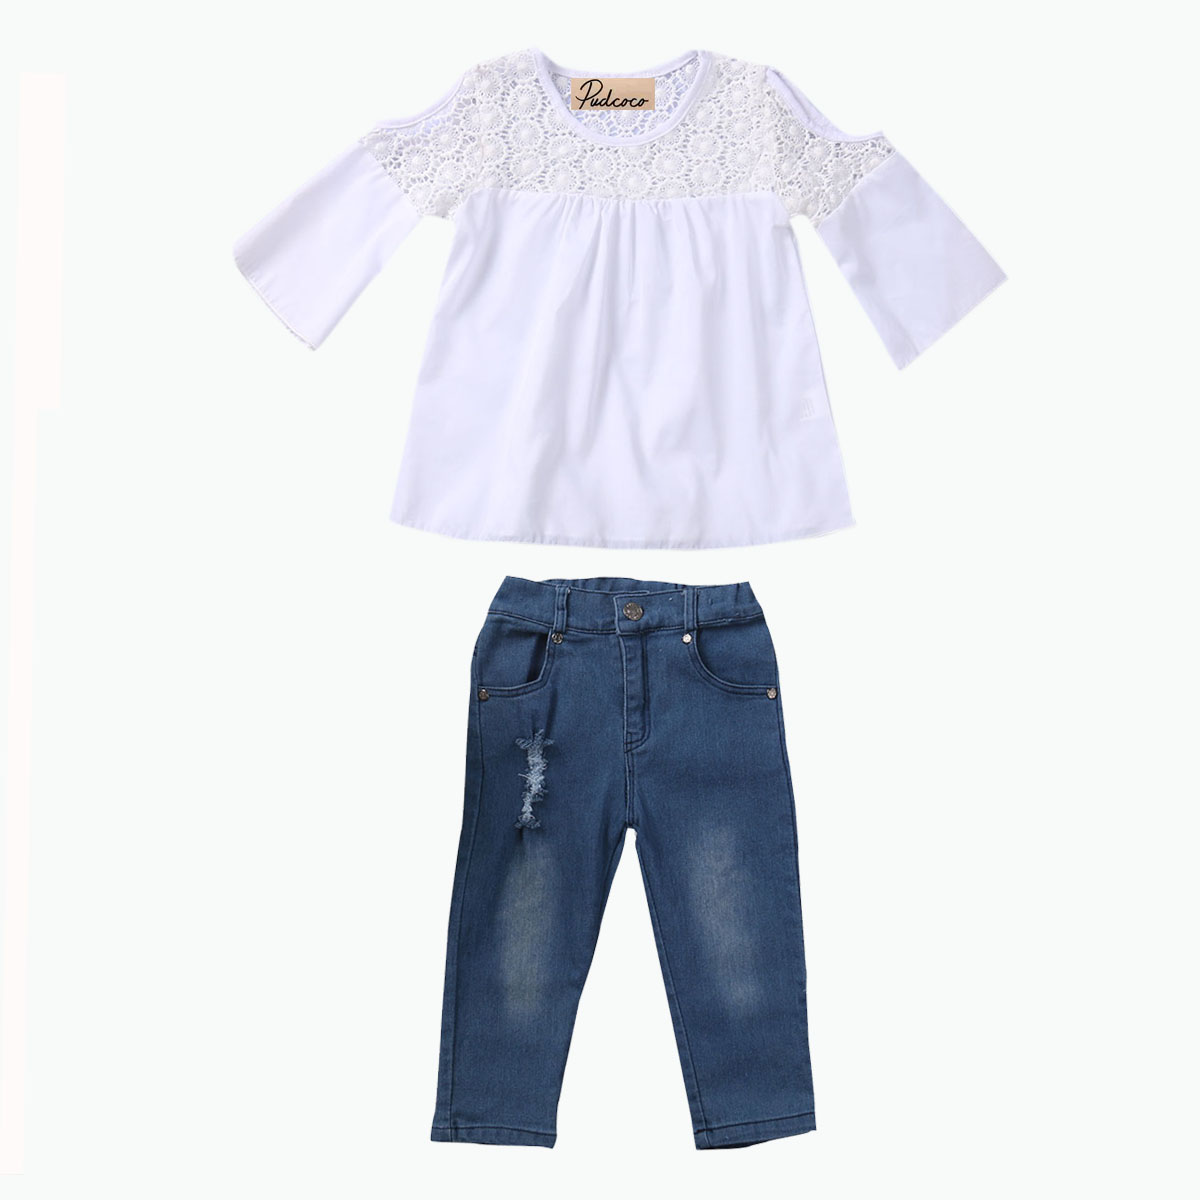 Compare Prices on White Kids Jeans- Online Shopping/Buy Low Price ...